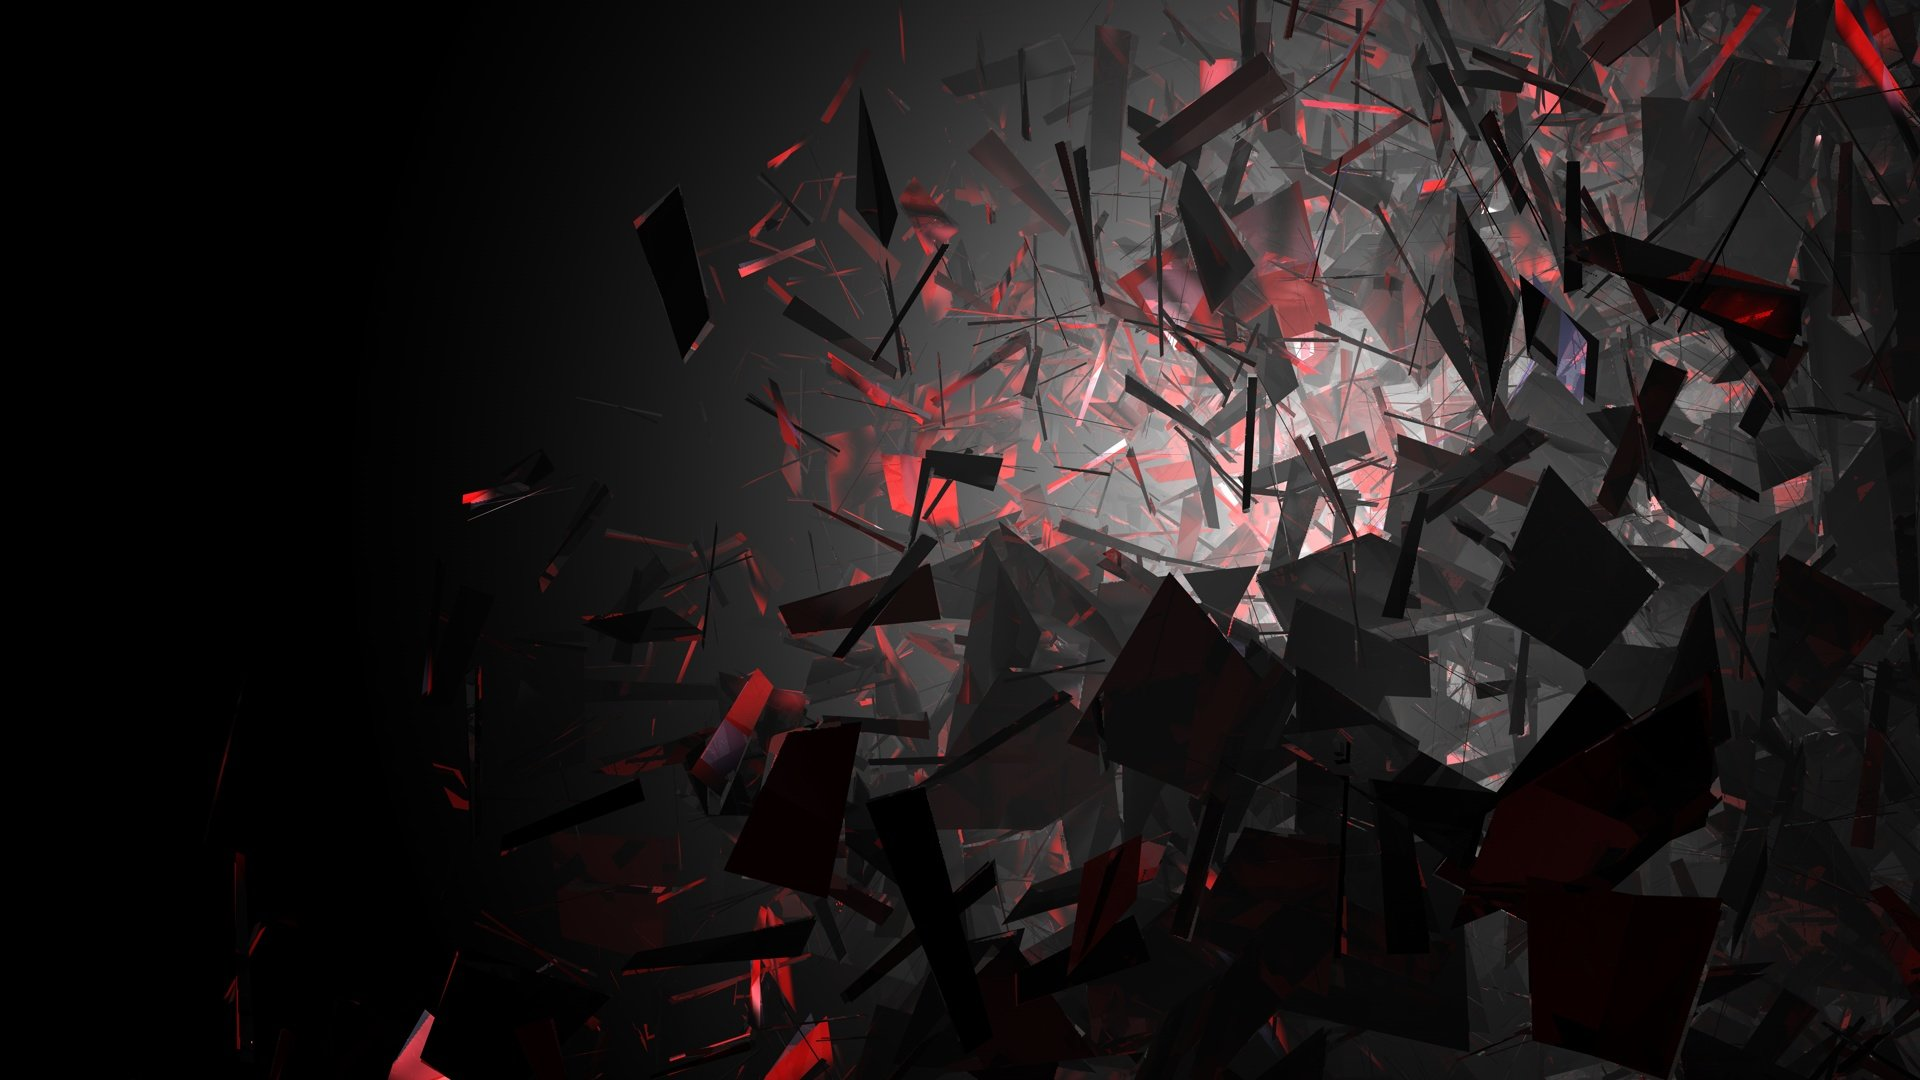 Download full hd 1920x1080 Dark Abstract PC wallpaper ID:322553 for free